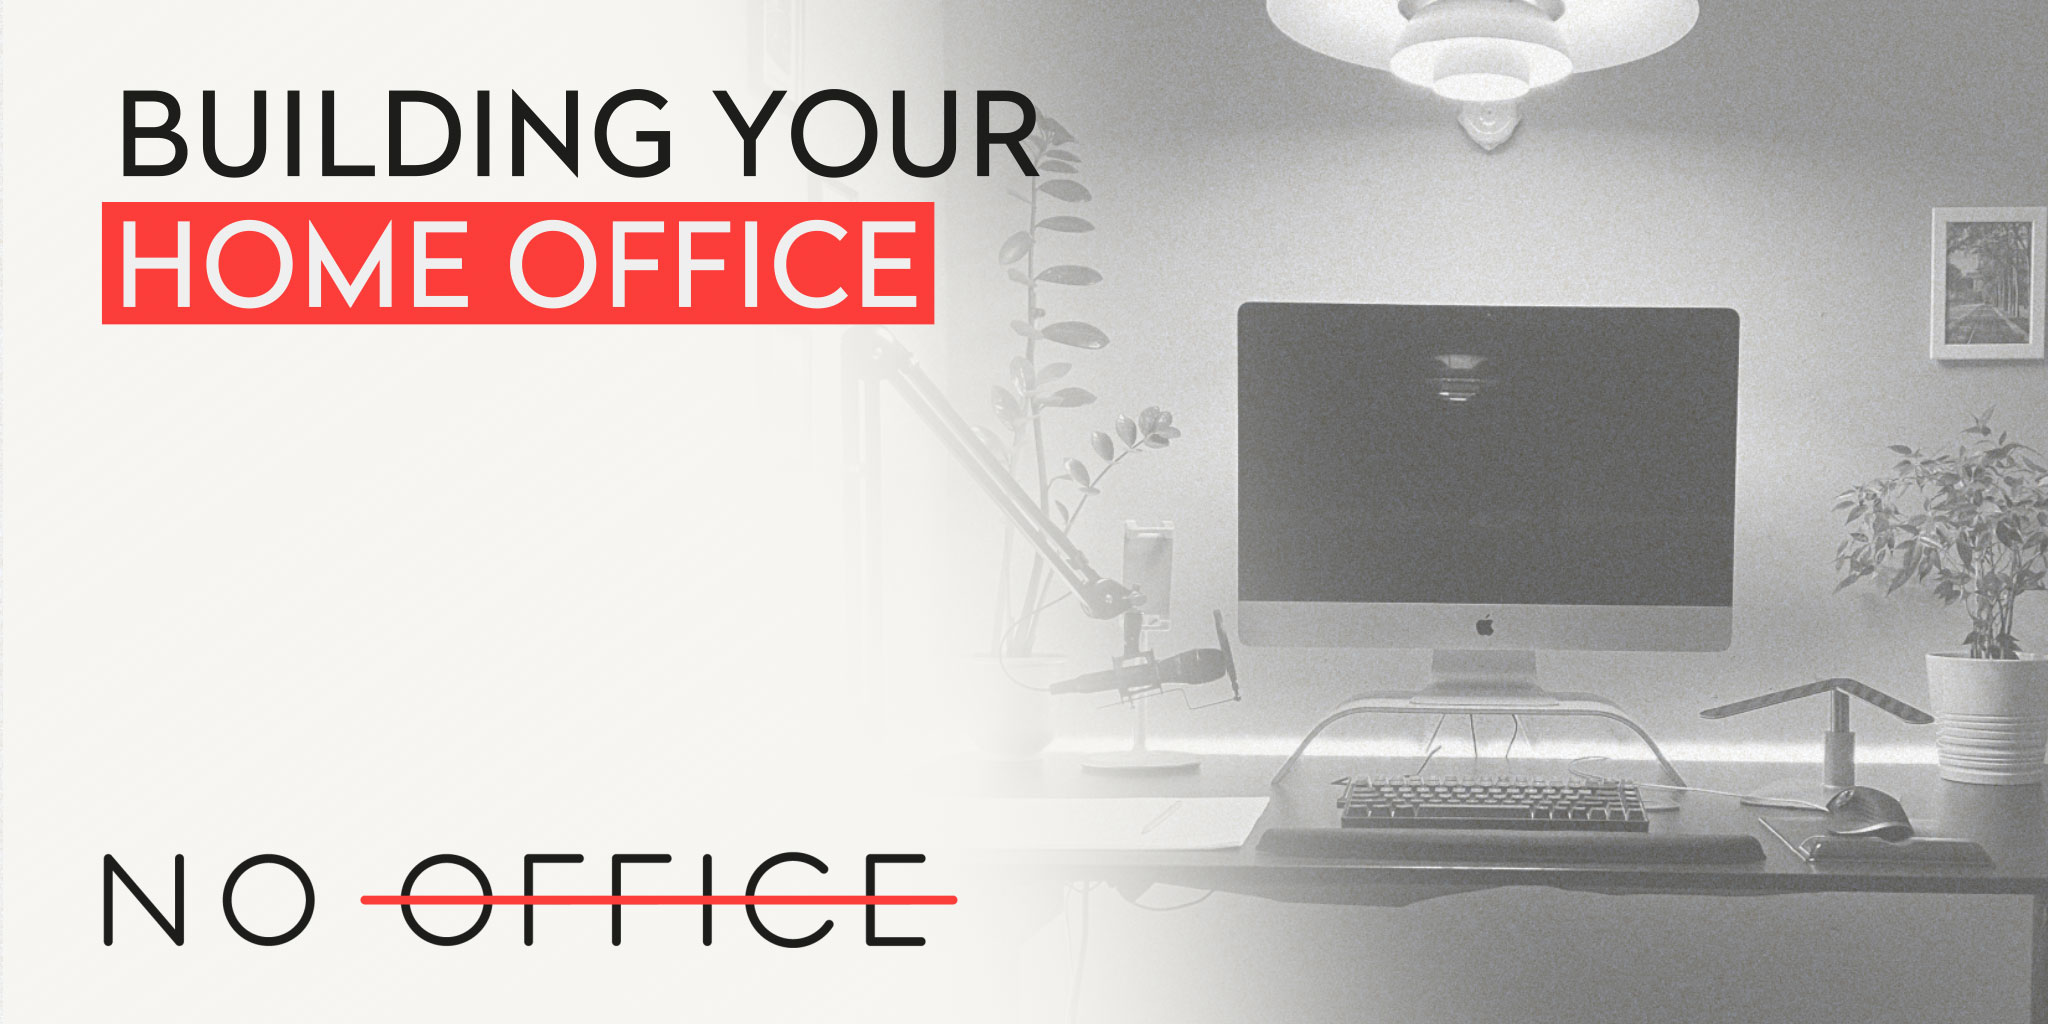 Building your home office - The No Office Podcast - remote work and dispersed team management